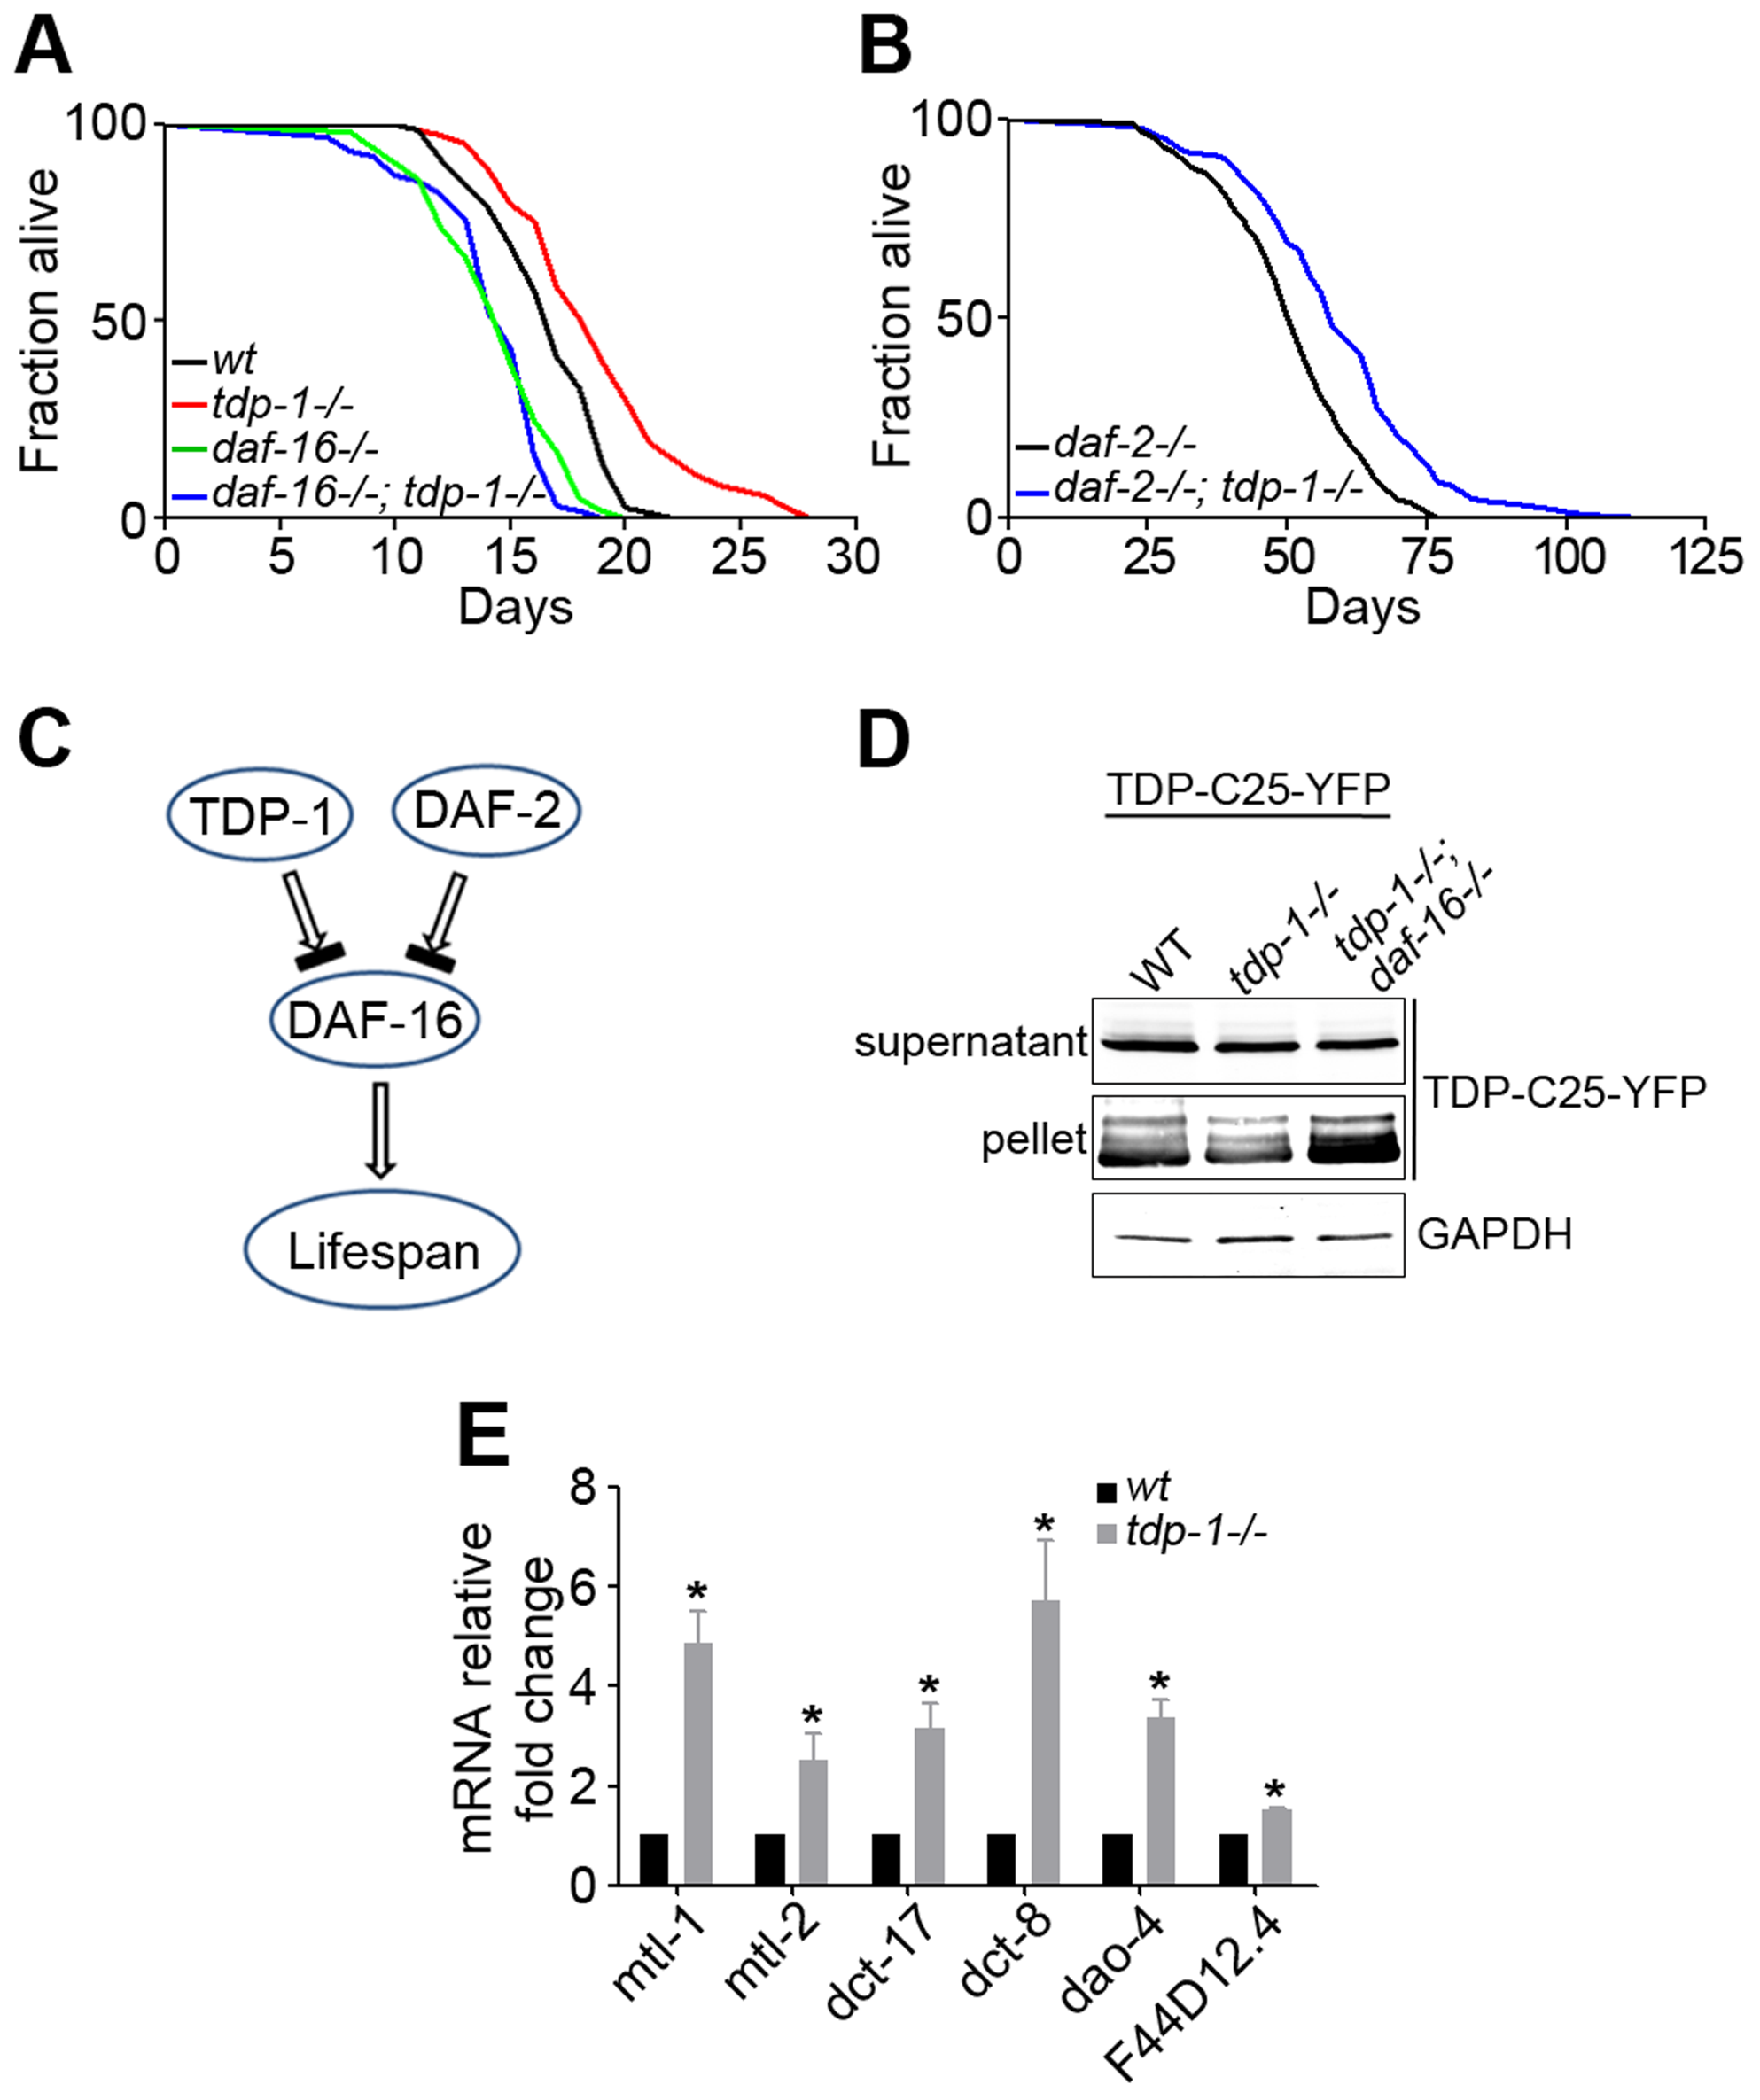 Loss of function of TDP-1 extends the lifespan and reduces protein aggregation in <i>C. elegans</i> in a DAF-16-dependent manner.